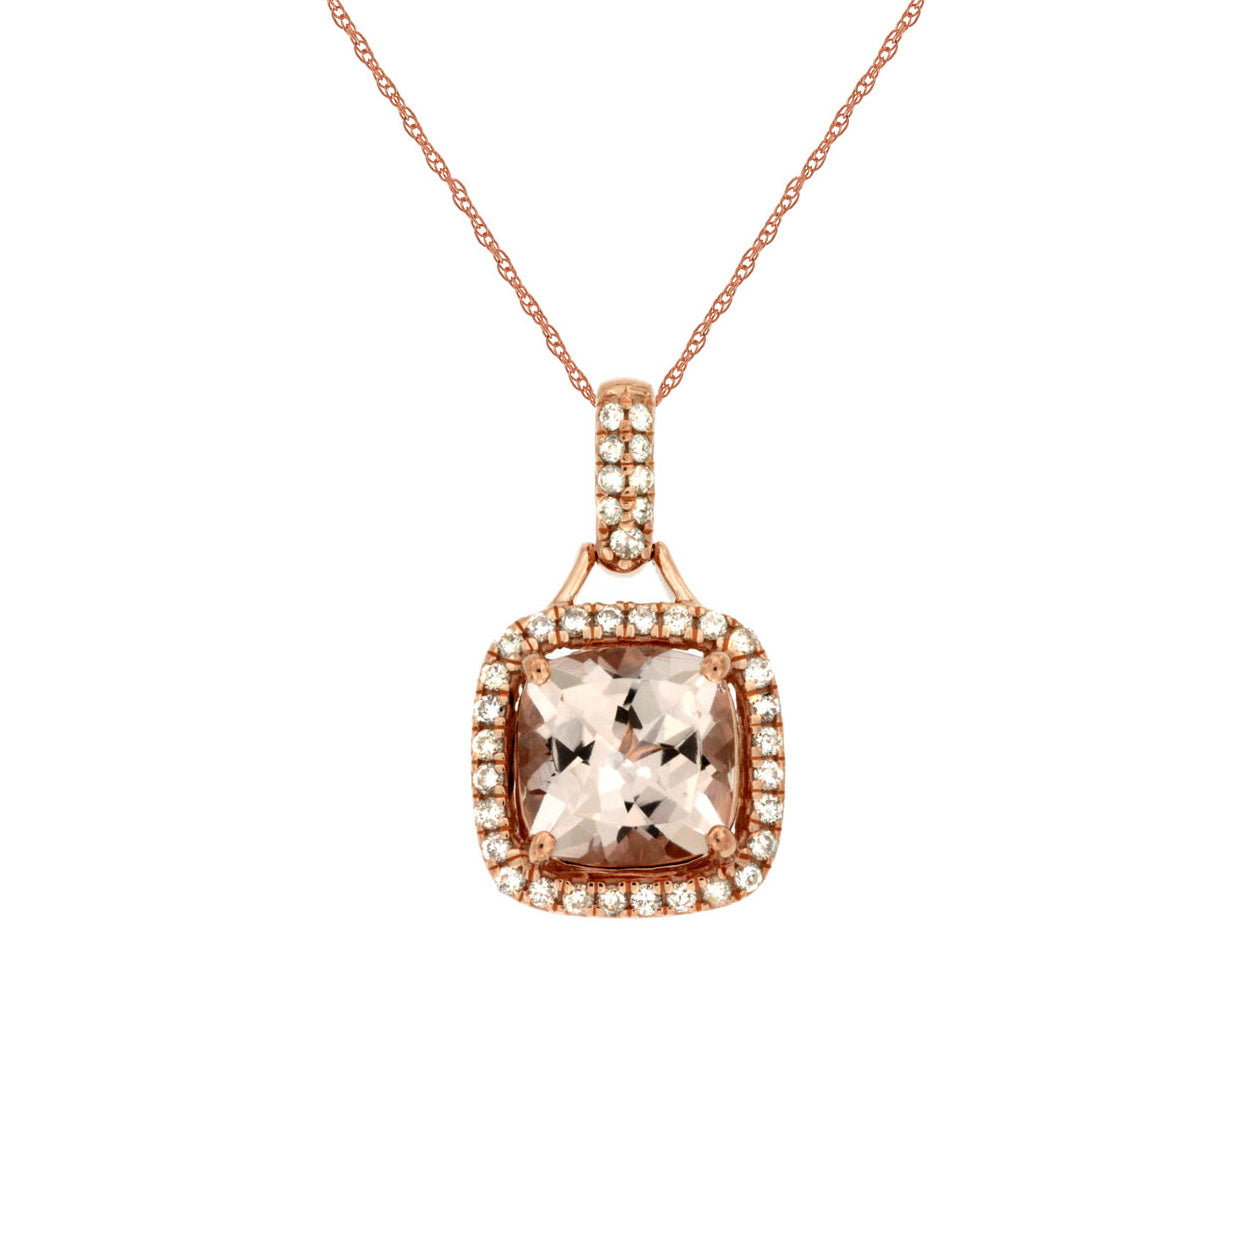 Sabel Collection 14K Rose Gold Cushion Cut Morganite and Diamond Pendant